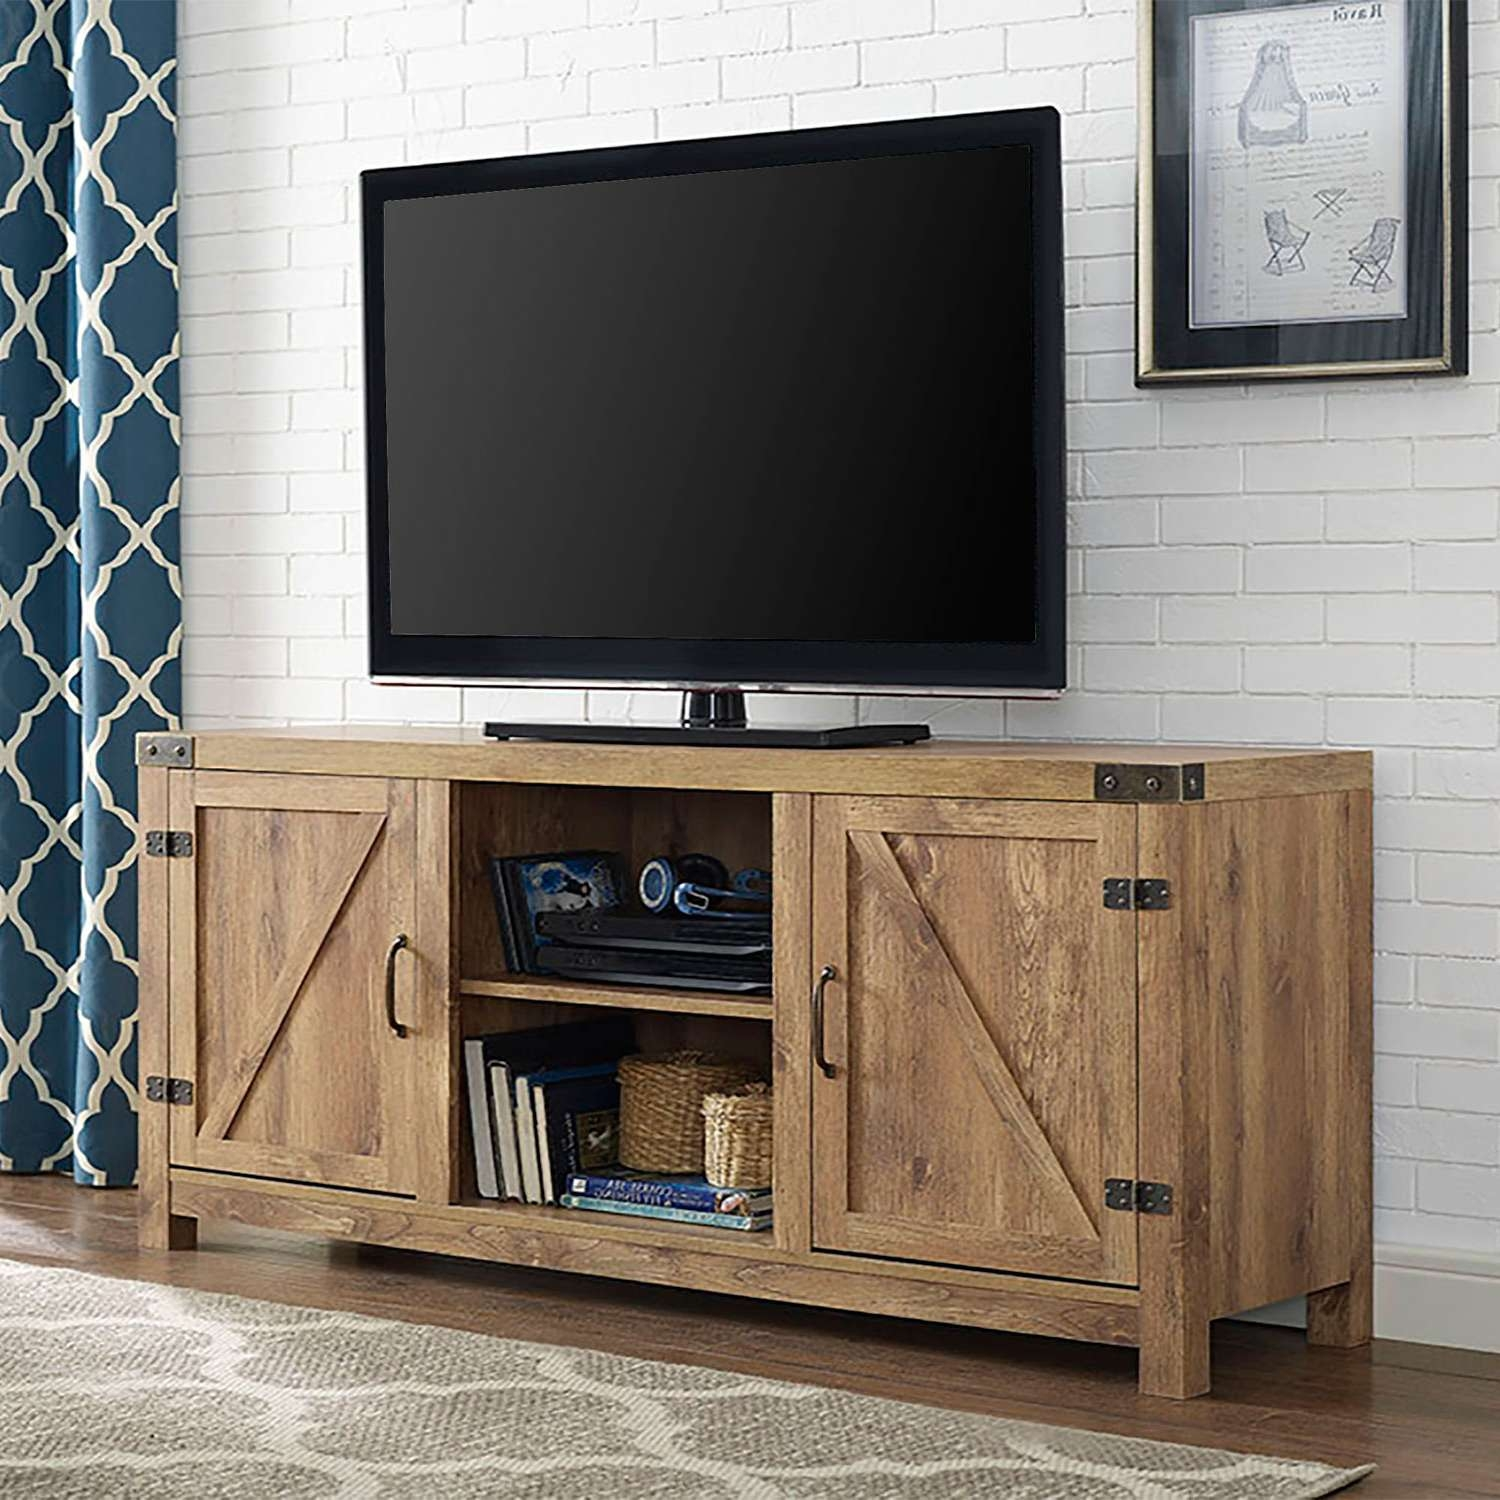 Tv Stands & Cabinets On Sale | Bellacor Pertaining To Asian Tv Cabinets (View 16 of 20)